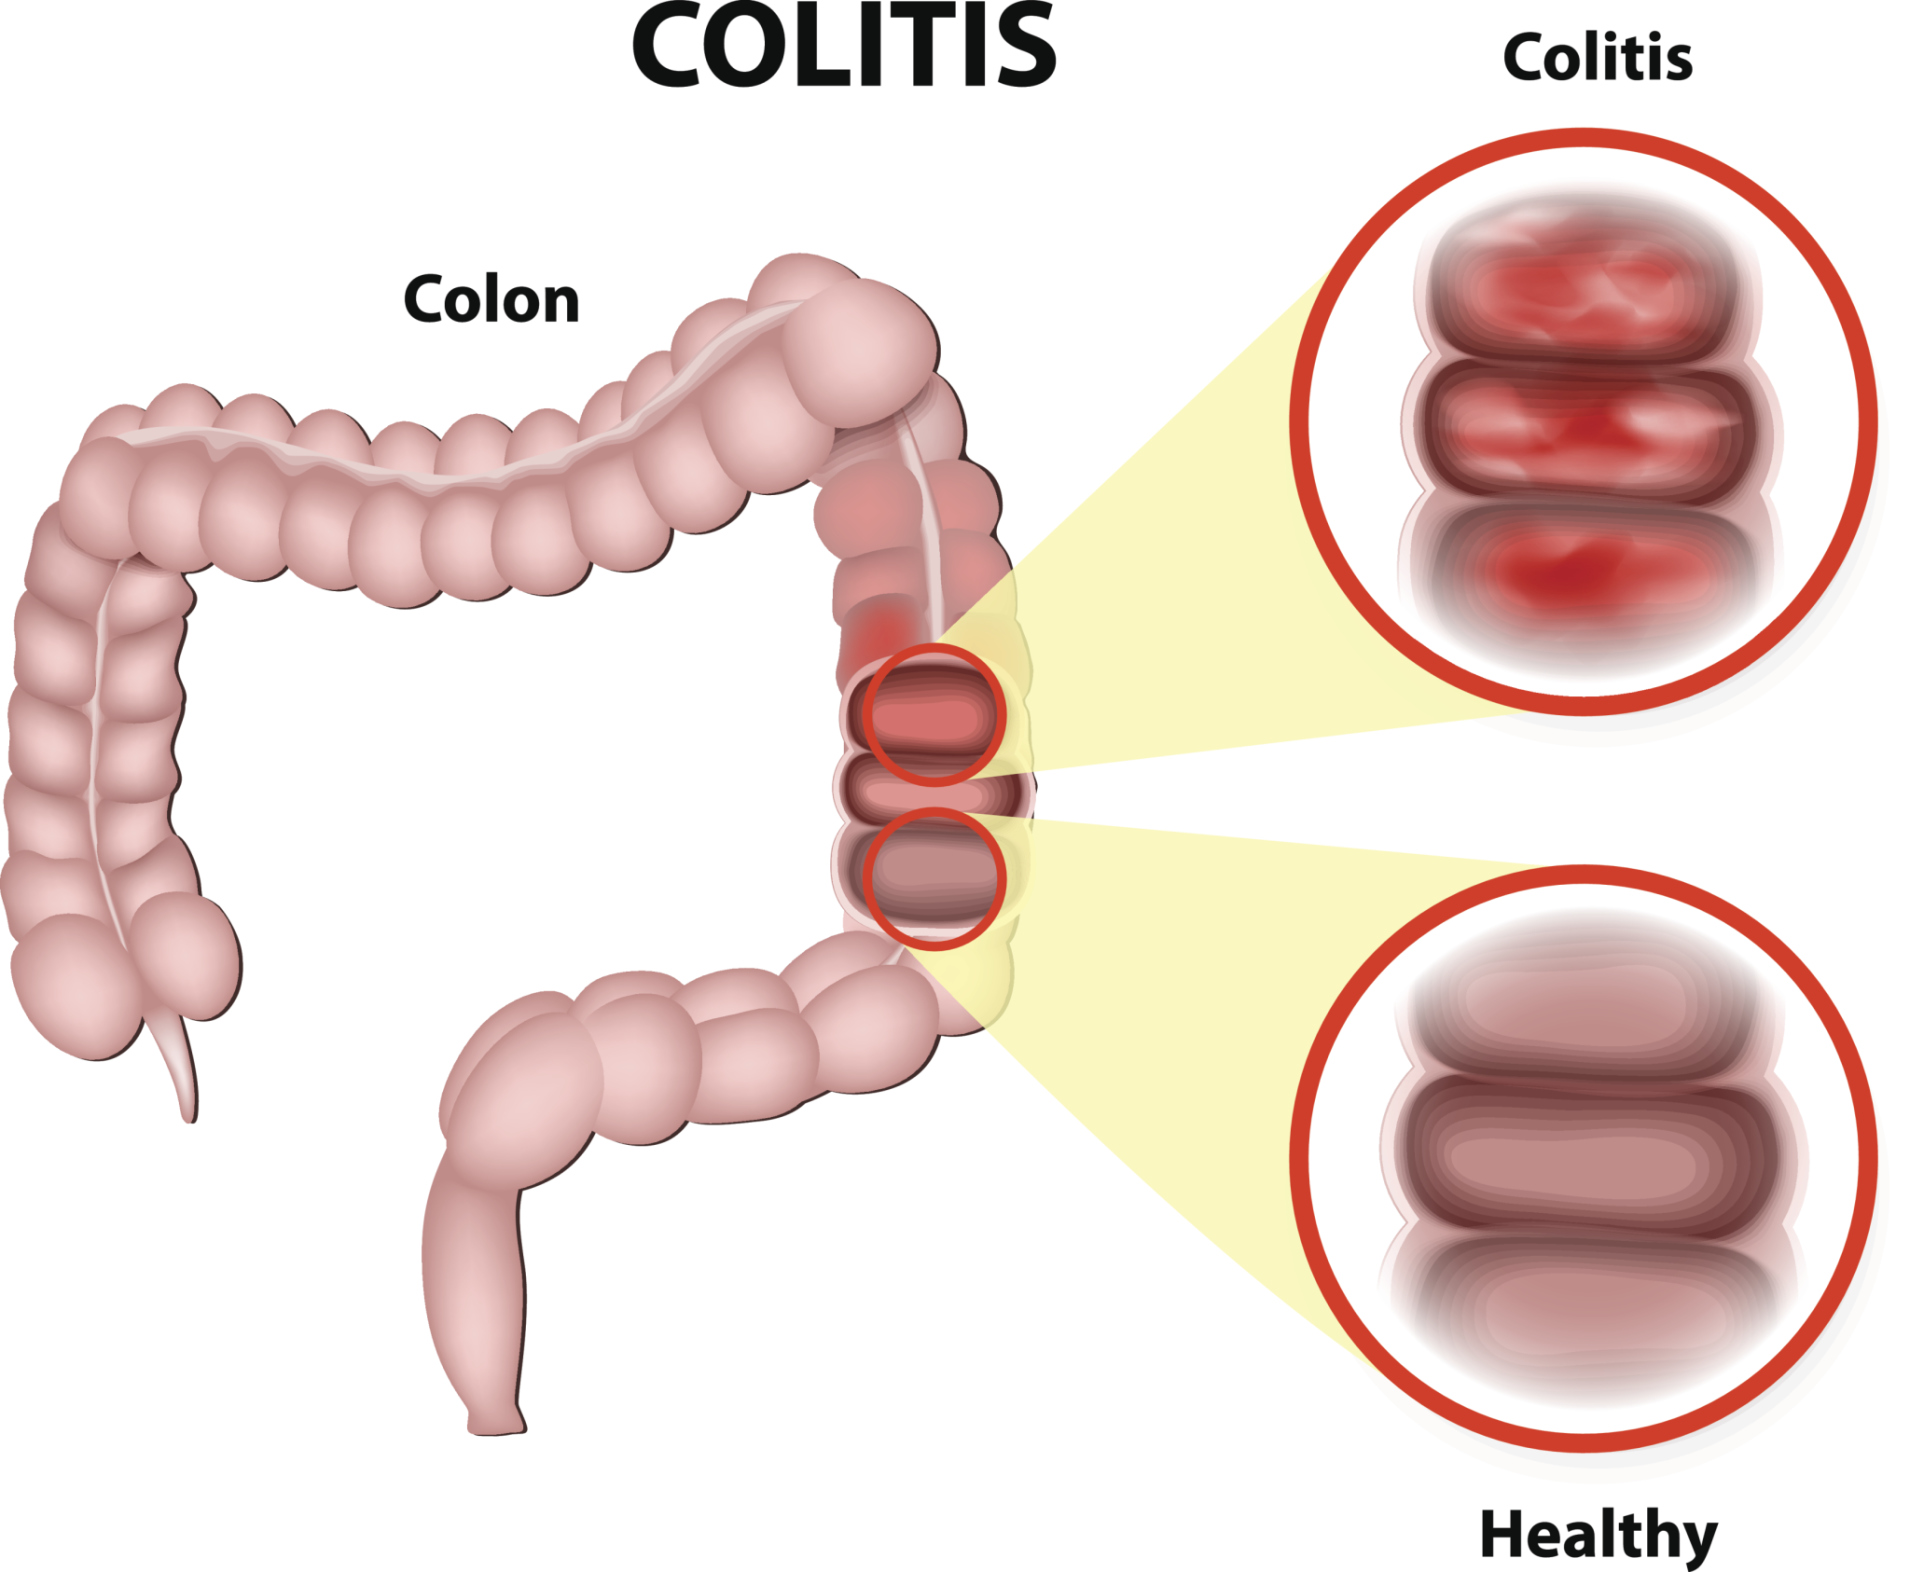 inflammatory bowel disease (ibd) and irritable bowel syndrome (ibs, Human Body